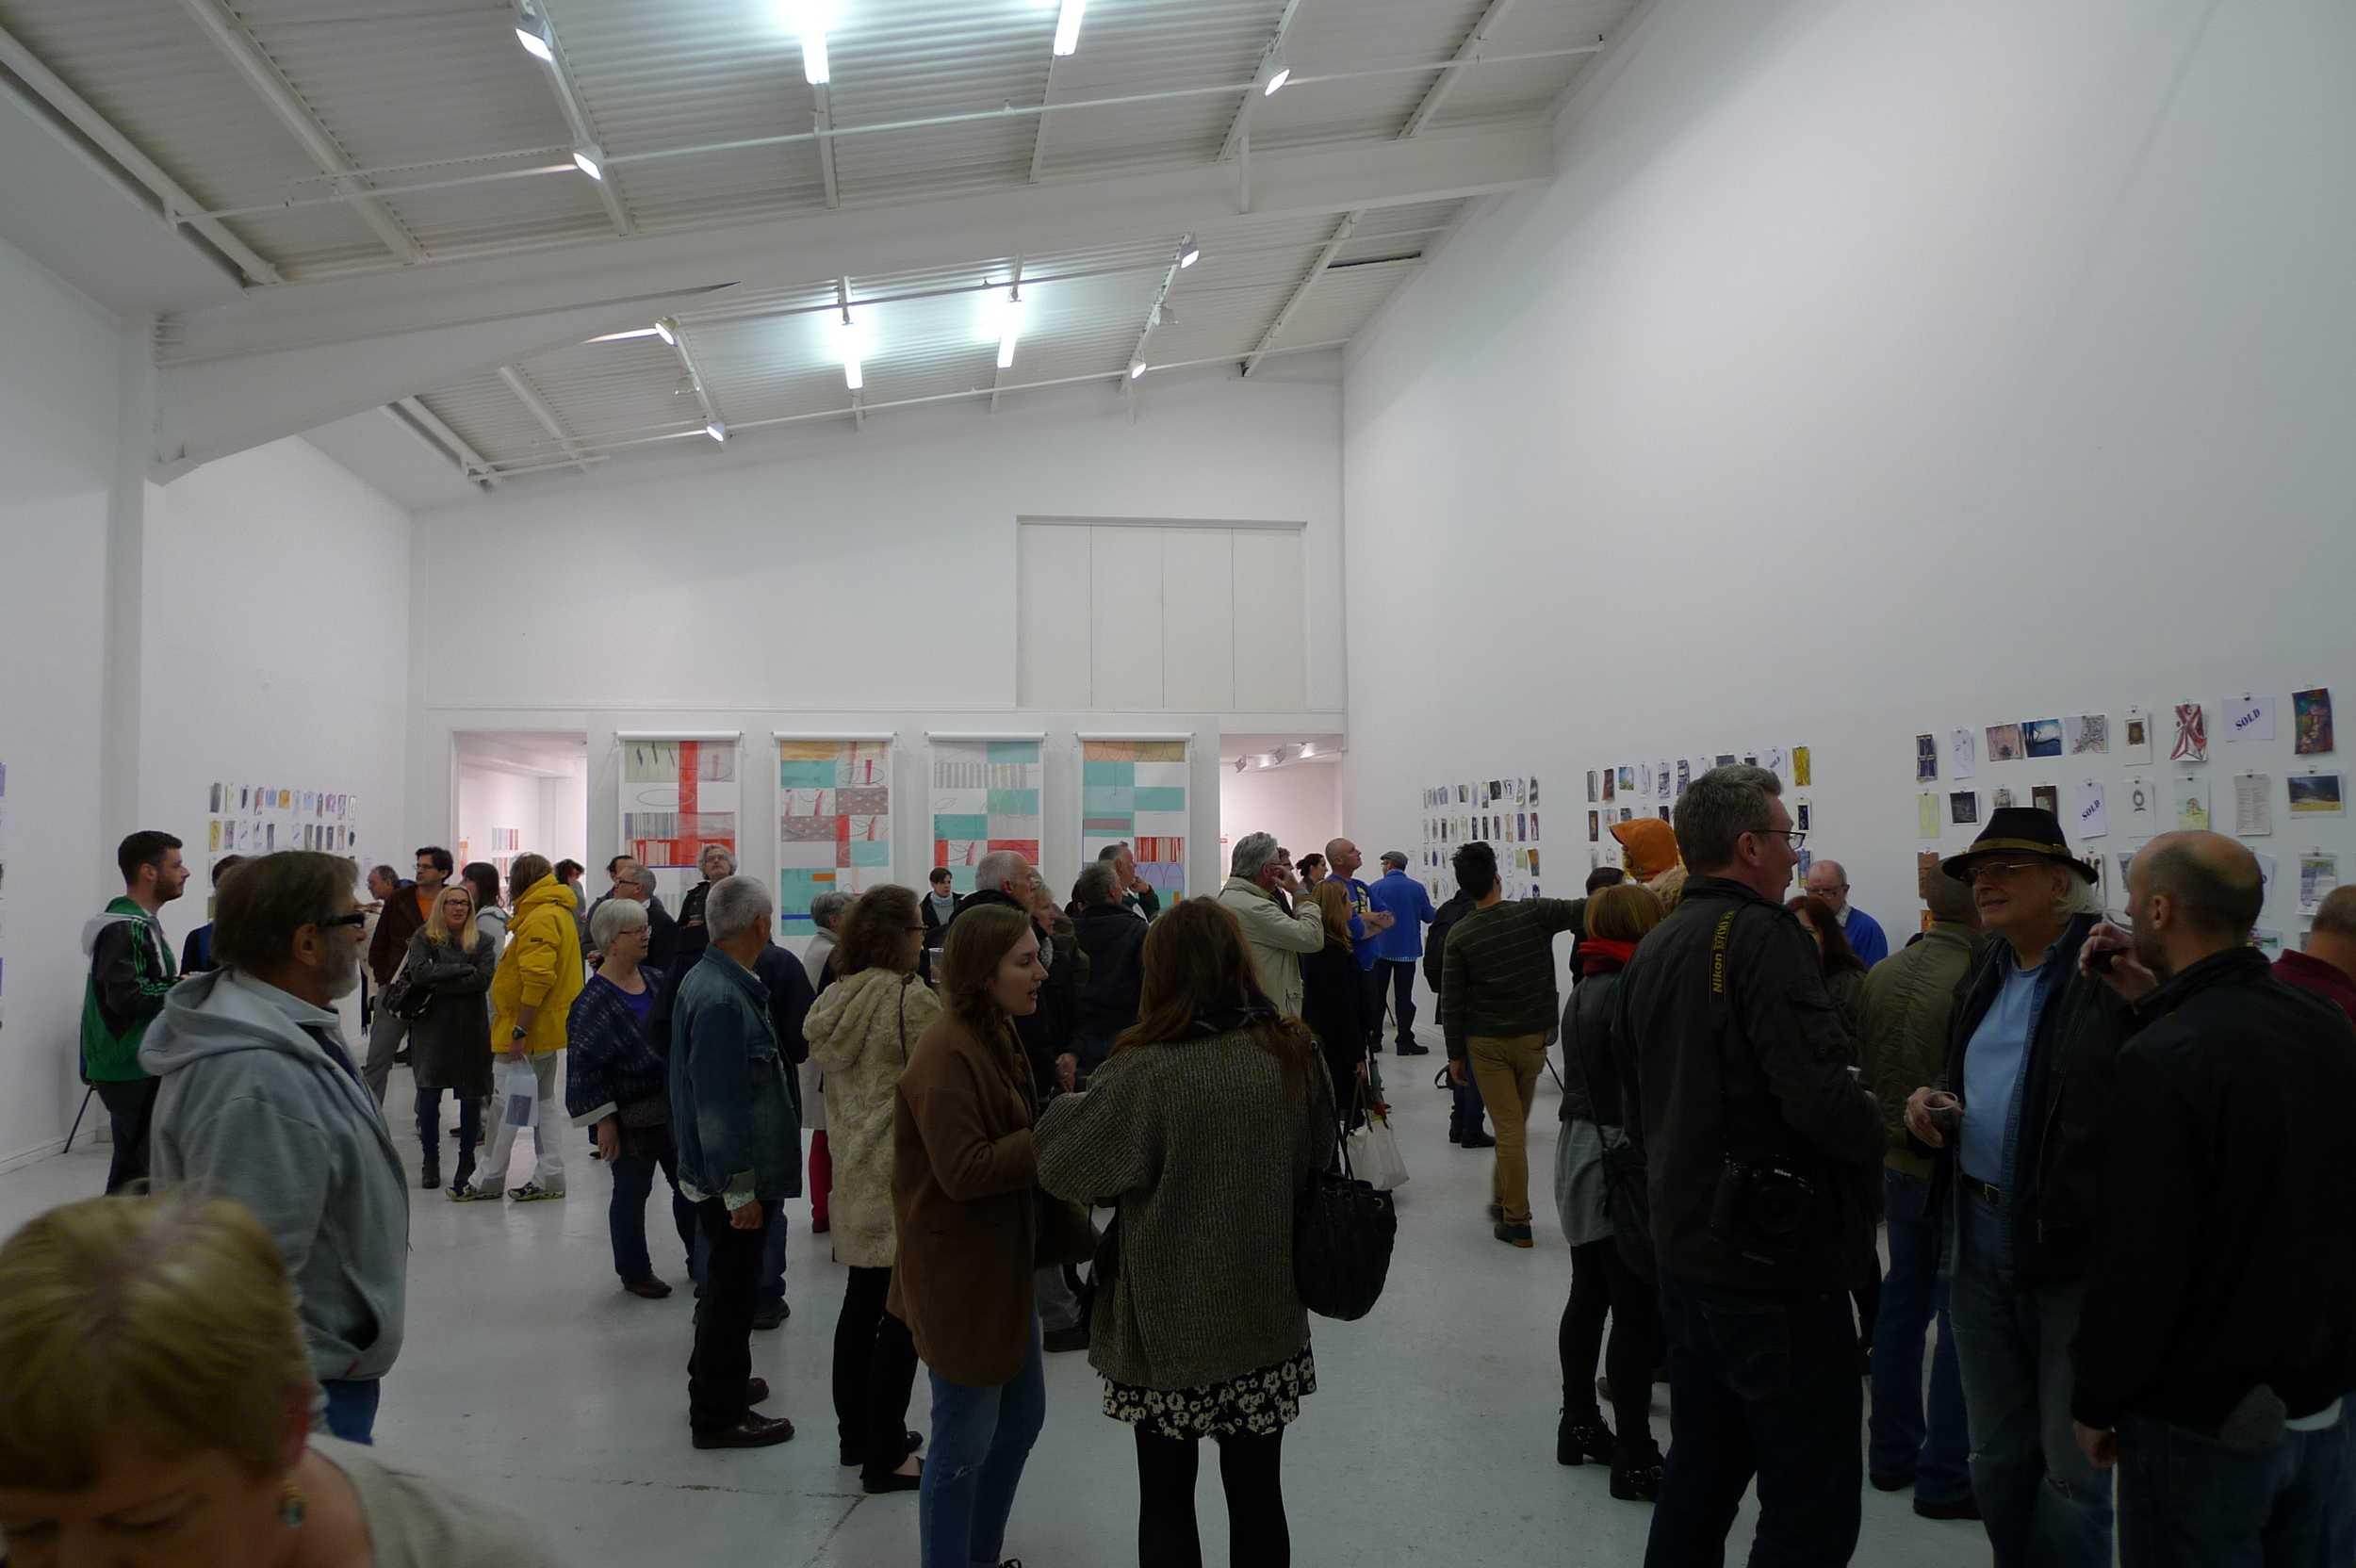 The rain was persistent but everyone still came out for a great opening night, was the free bar that much of an enticement..? Thanks again to the the no format Gallery for having us